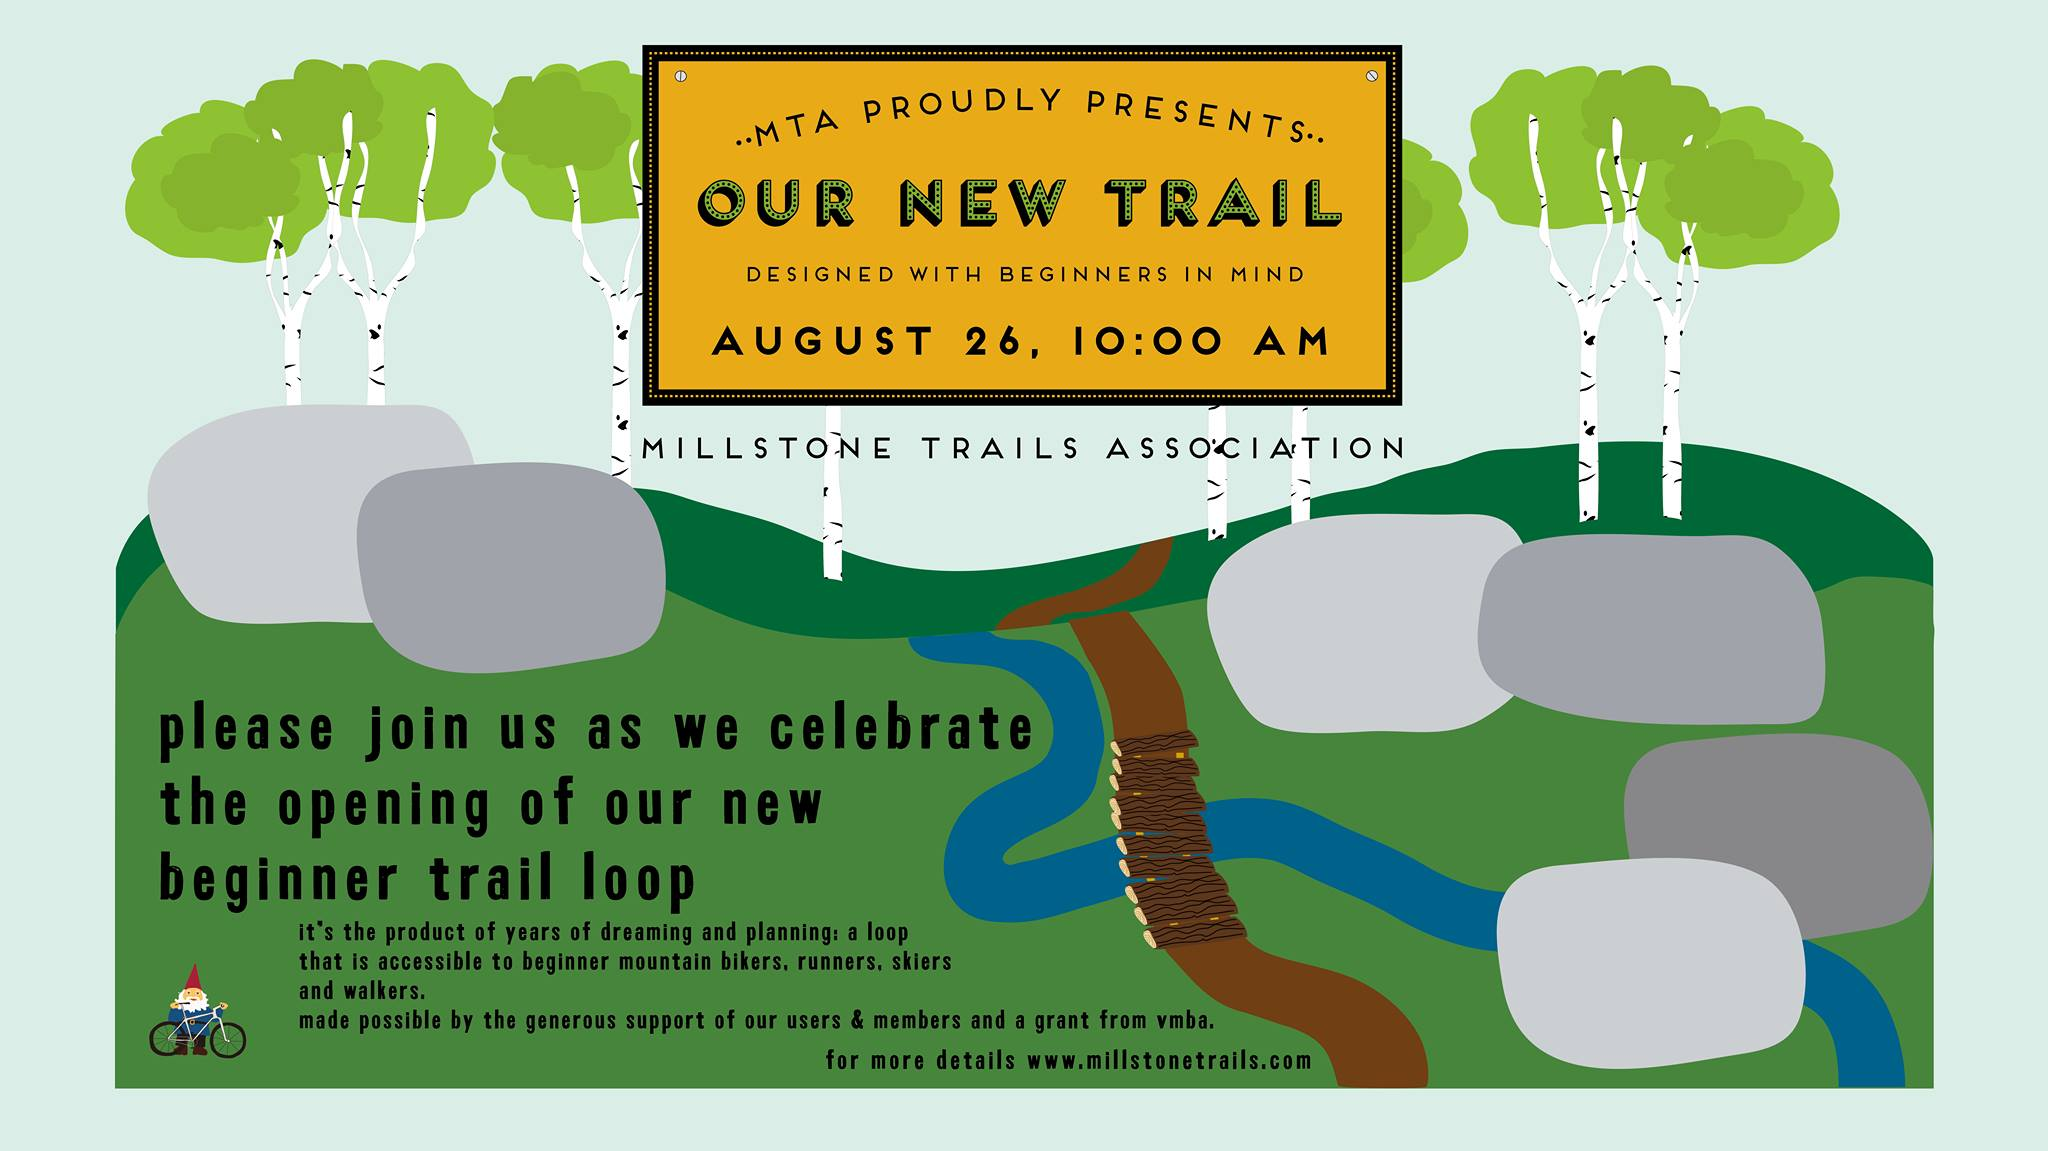 New Trail Opening Ceremony!